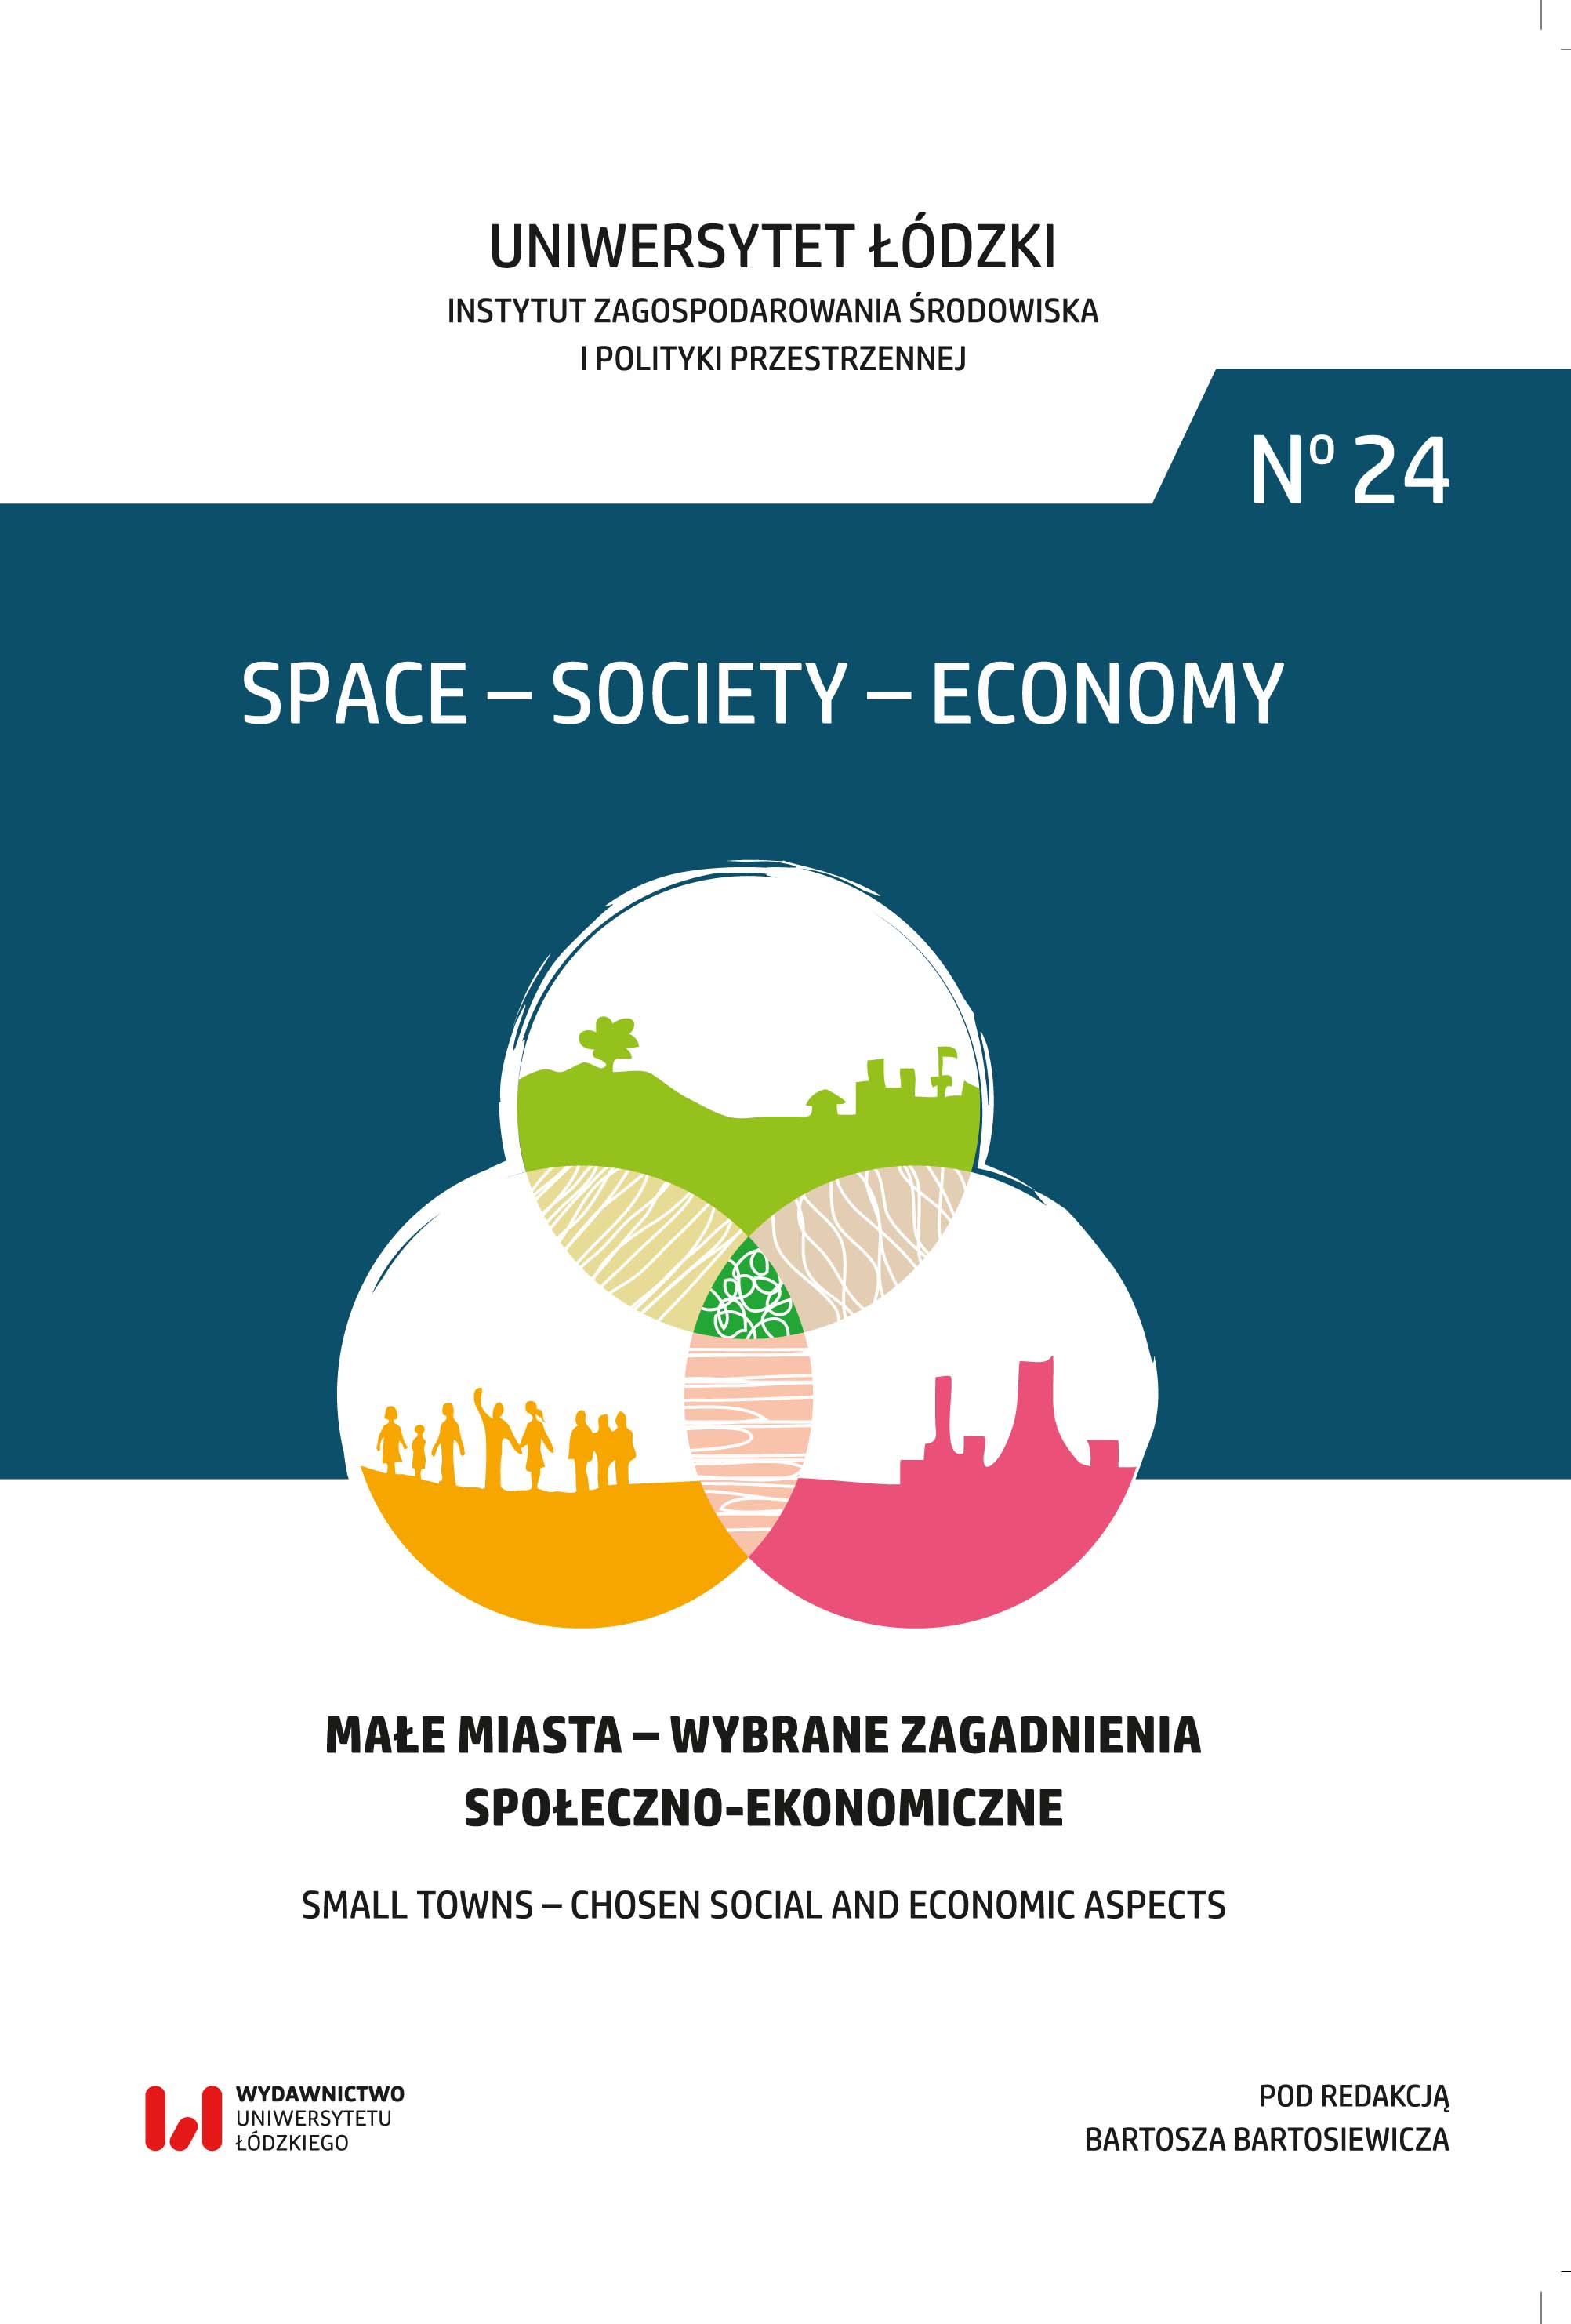 Citizen participation in city management from the perspective of the mayors of Greater Poland Cover Image